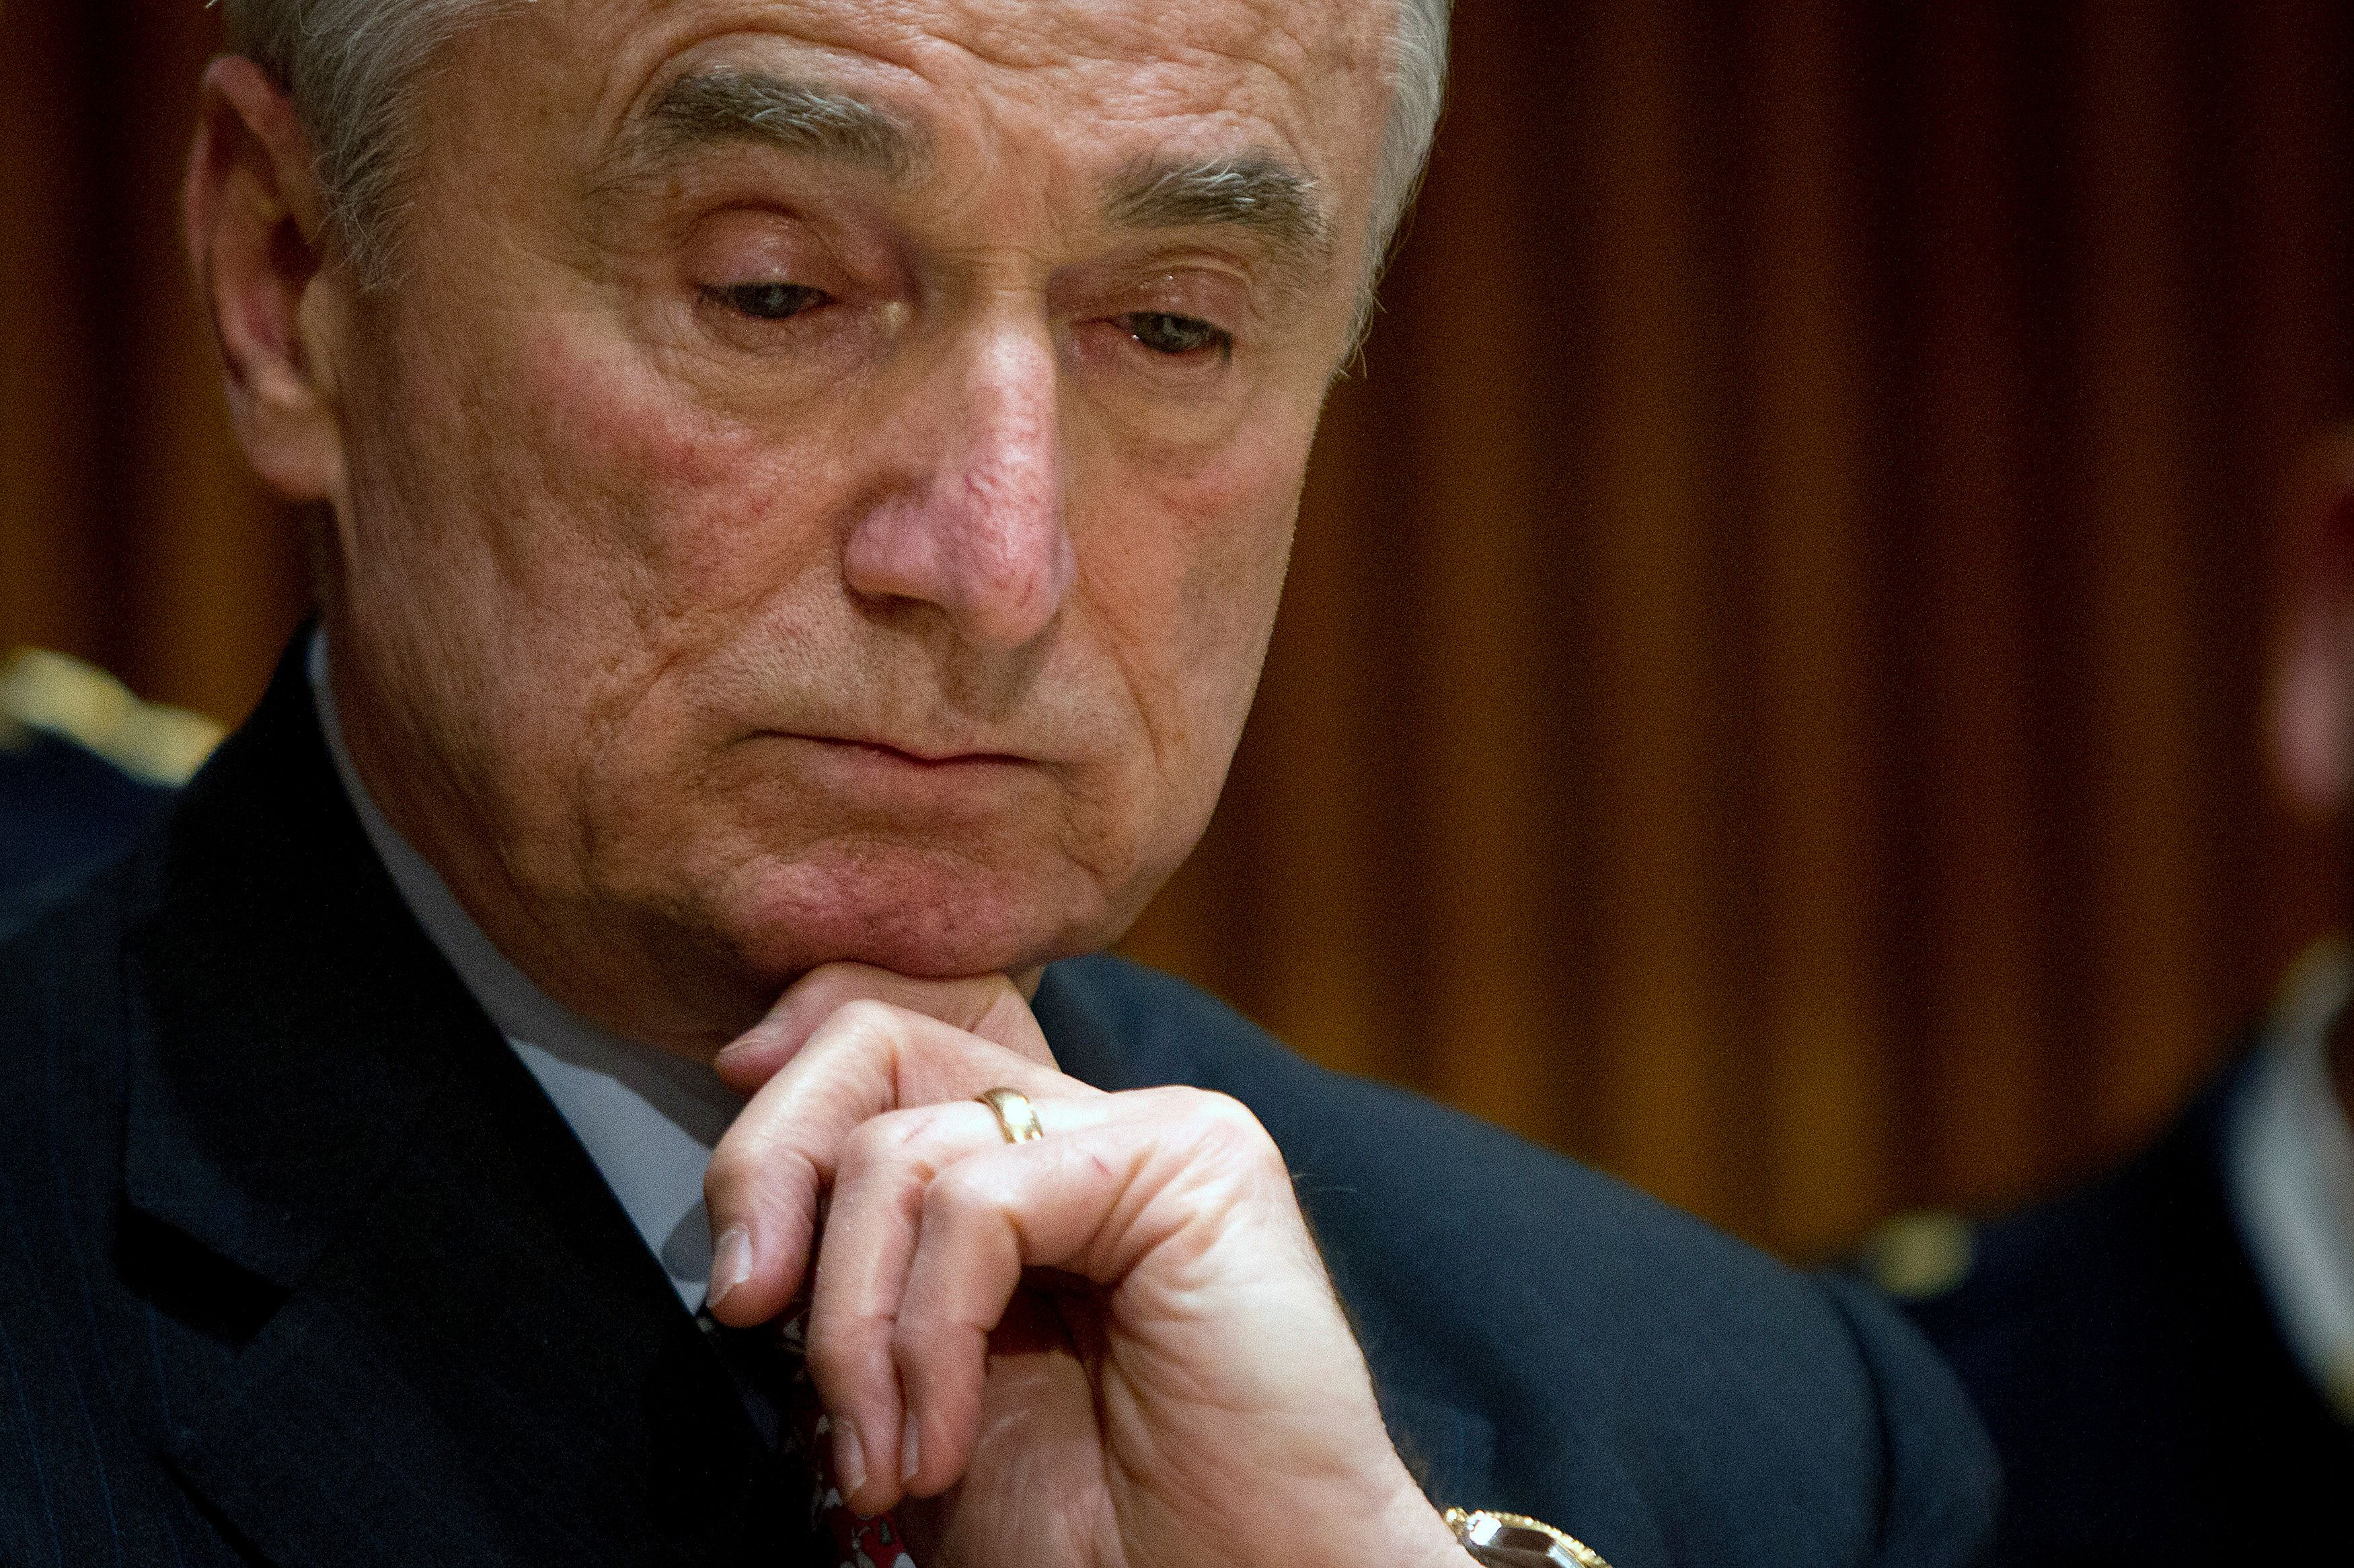 New York Police Commissioner Bill Bratton appears at a press conference about the two police officers who were shot in the head in the Brooklyn borough of New York, December 22, 2014. Bratton said the heads of the city's five police unions had agreed to suspend any lobbying efforts tied to the protests until after both NYPD officers, Rafael Ramos, 40, and his partner, Wenjian Liu, 28, are buried.    REUTERS/Carlo Allegri   (UNITED STATES - Tags: SOCIETY CIVIL UNREST)